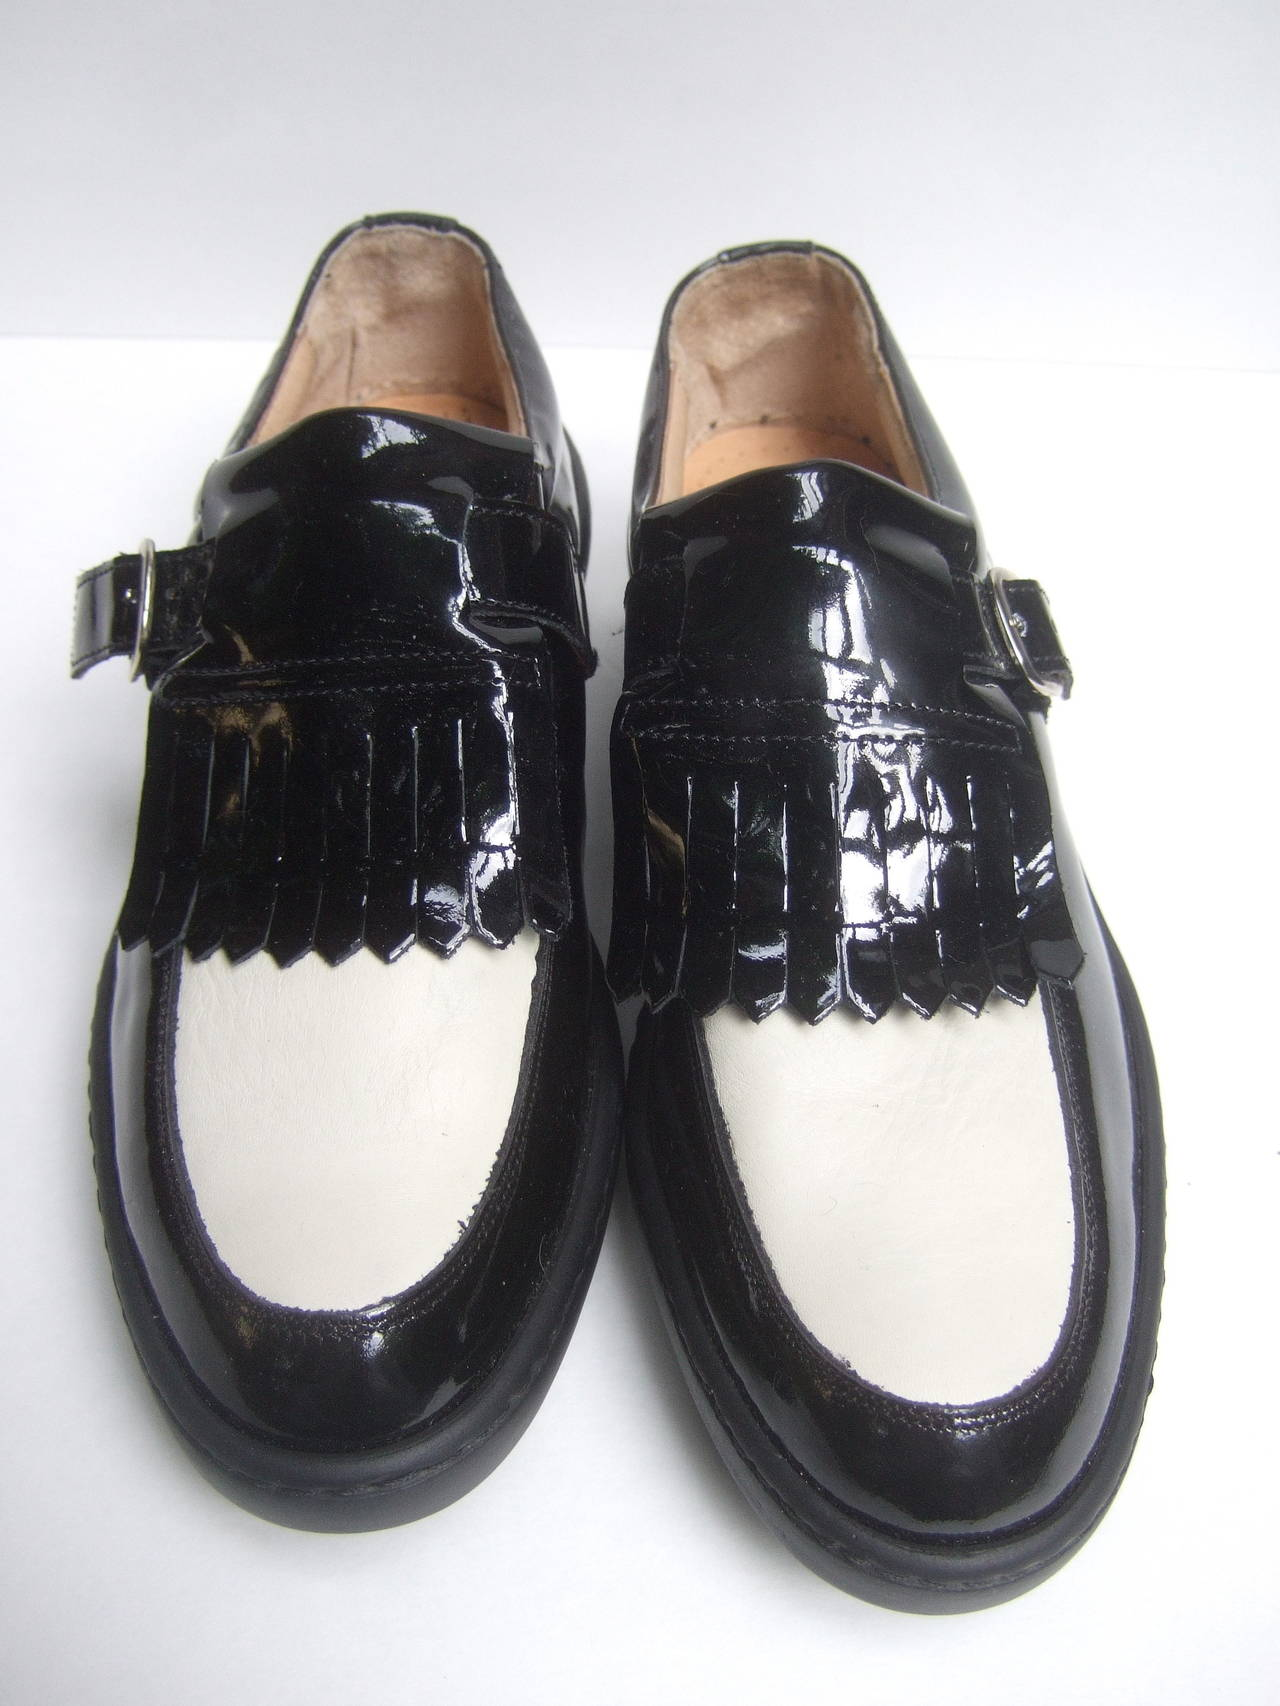 Women S Italian New Patent Leather Brogue Golf Shoes Us